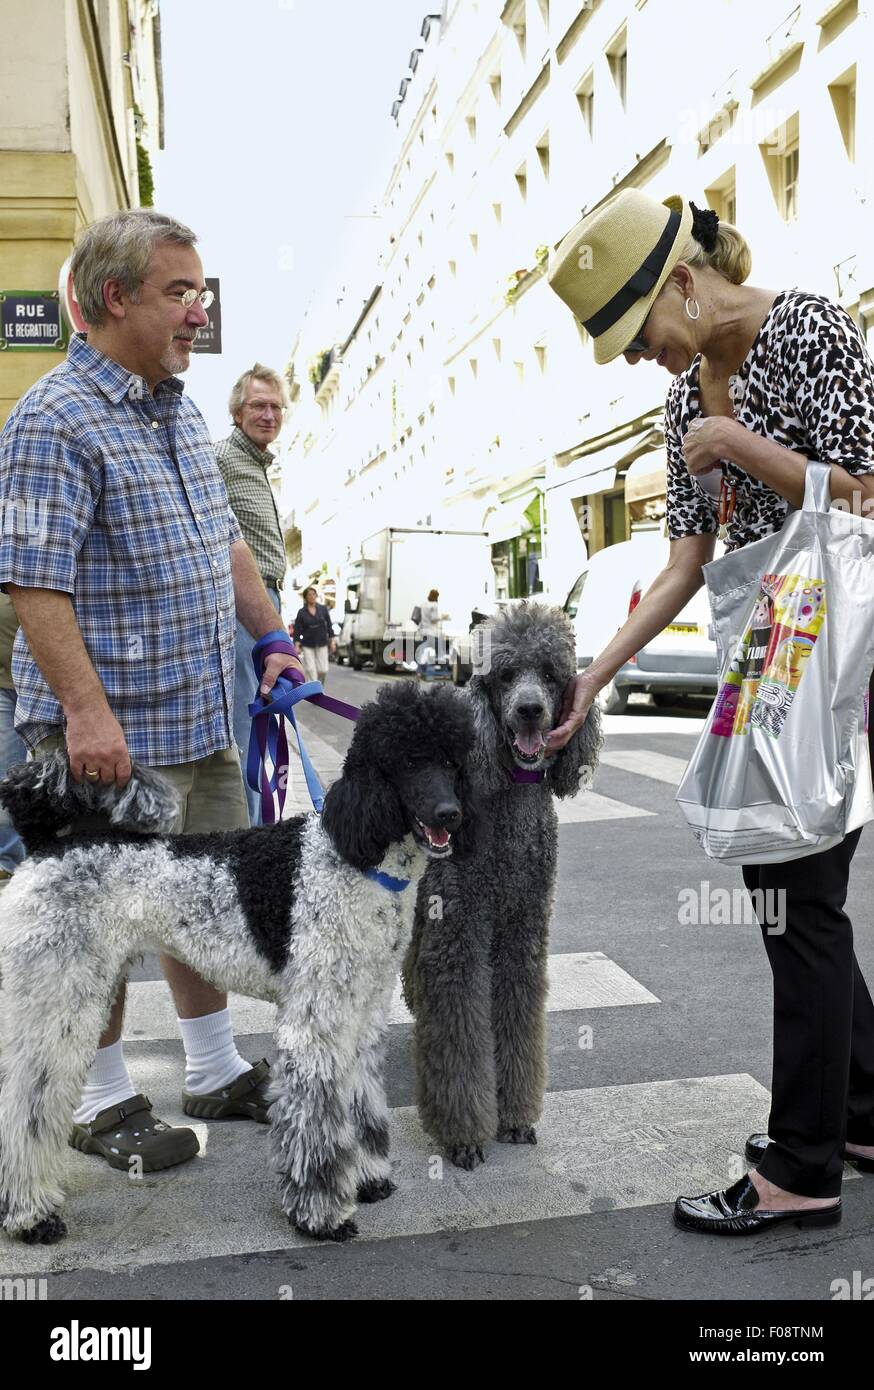 Man and woman standing with poodles on street, Ile Saint-Louis Island, Paris, France - Stock Image